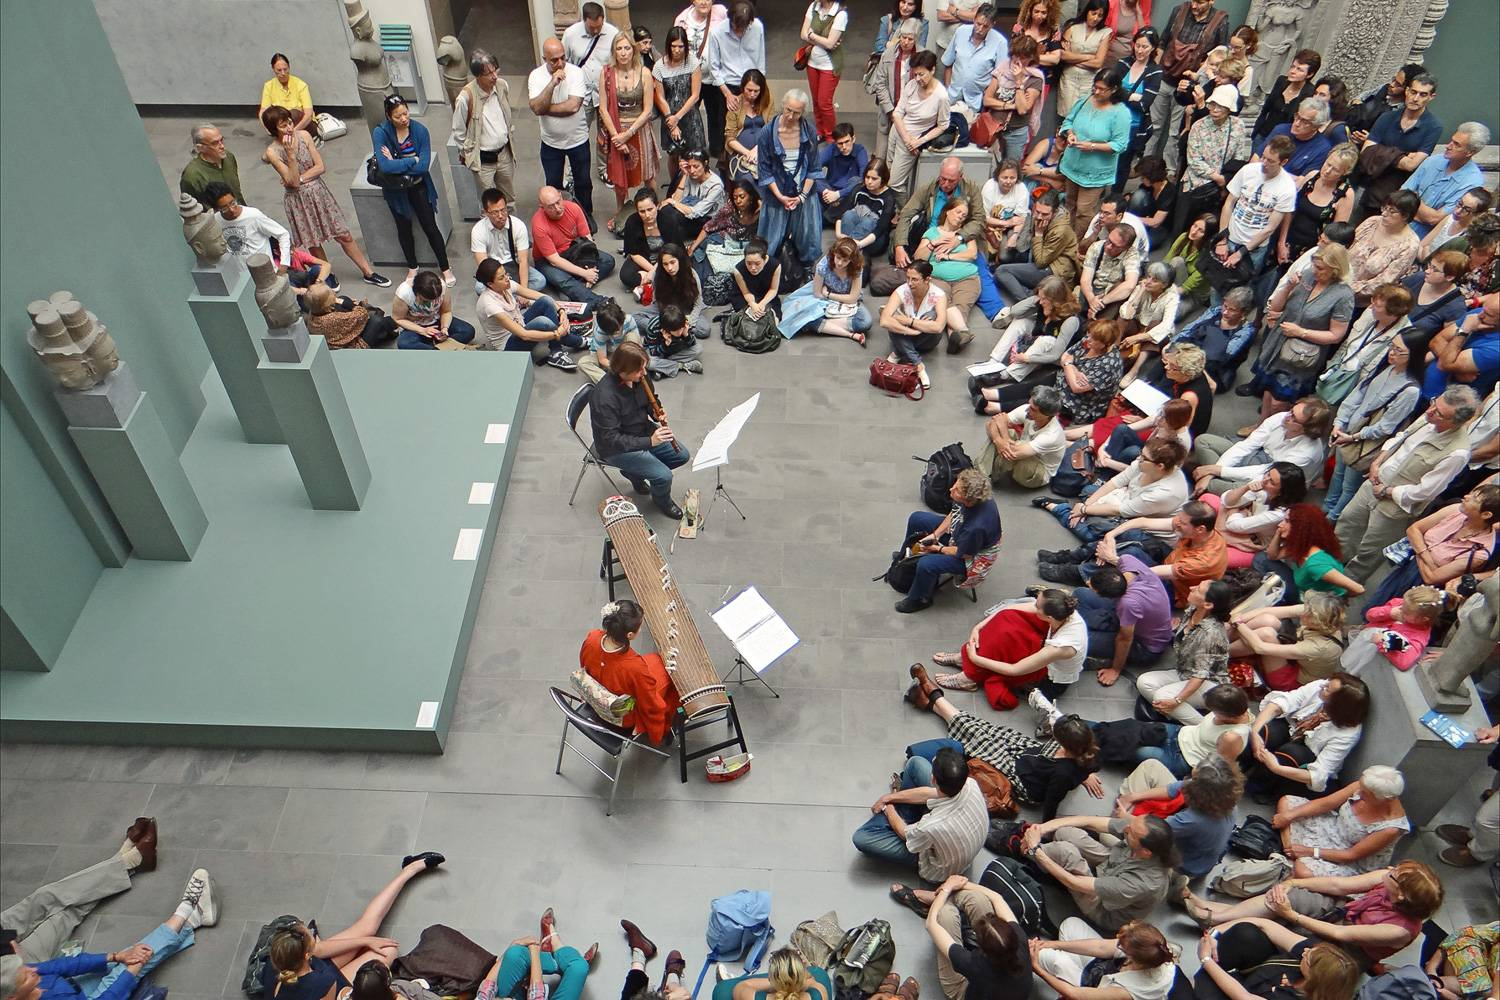 Image of people gathered for a duet concert at Musée Guimet during Fête de la Musique.